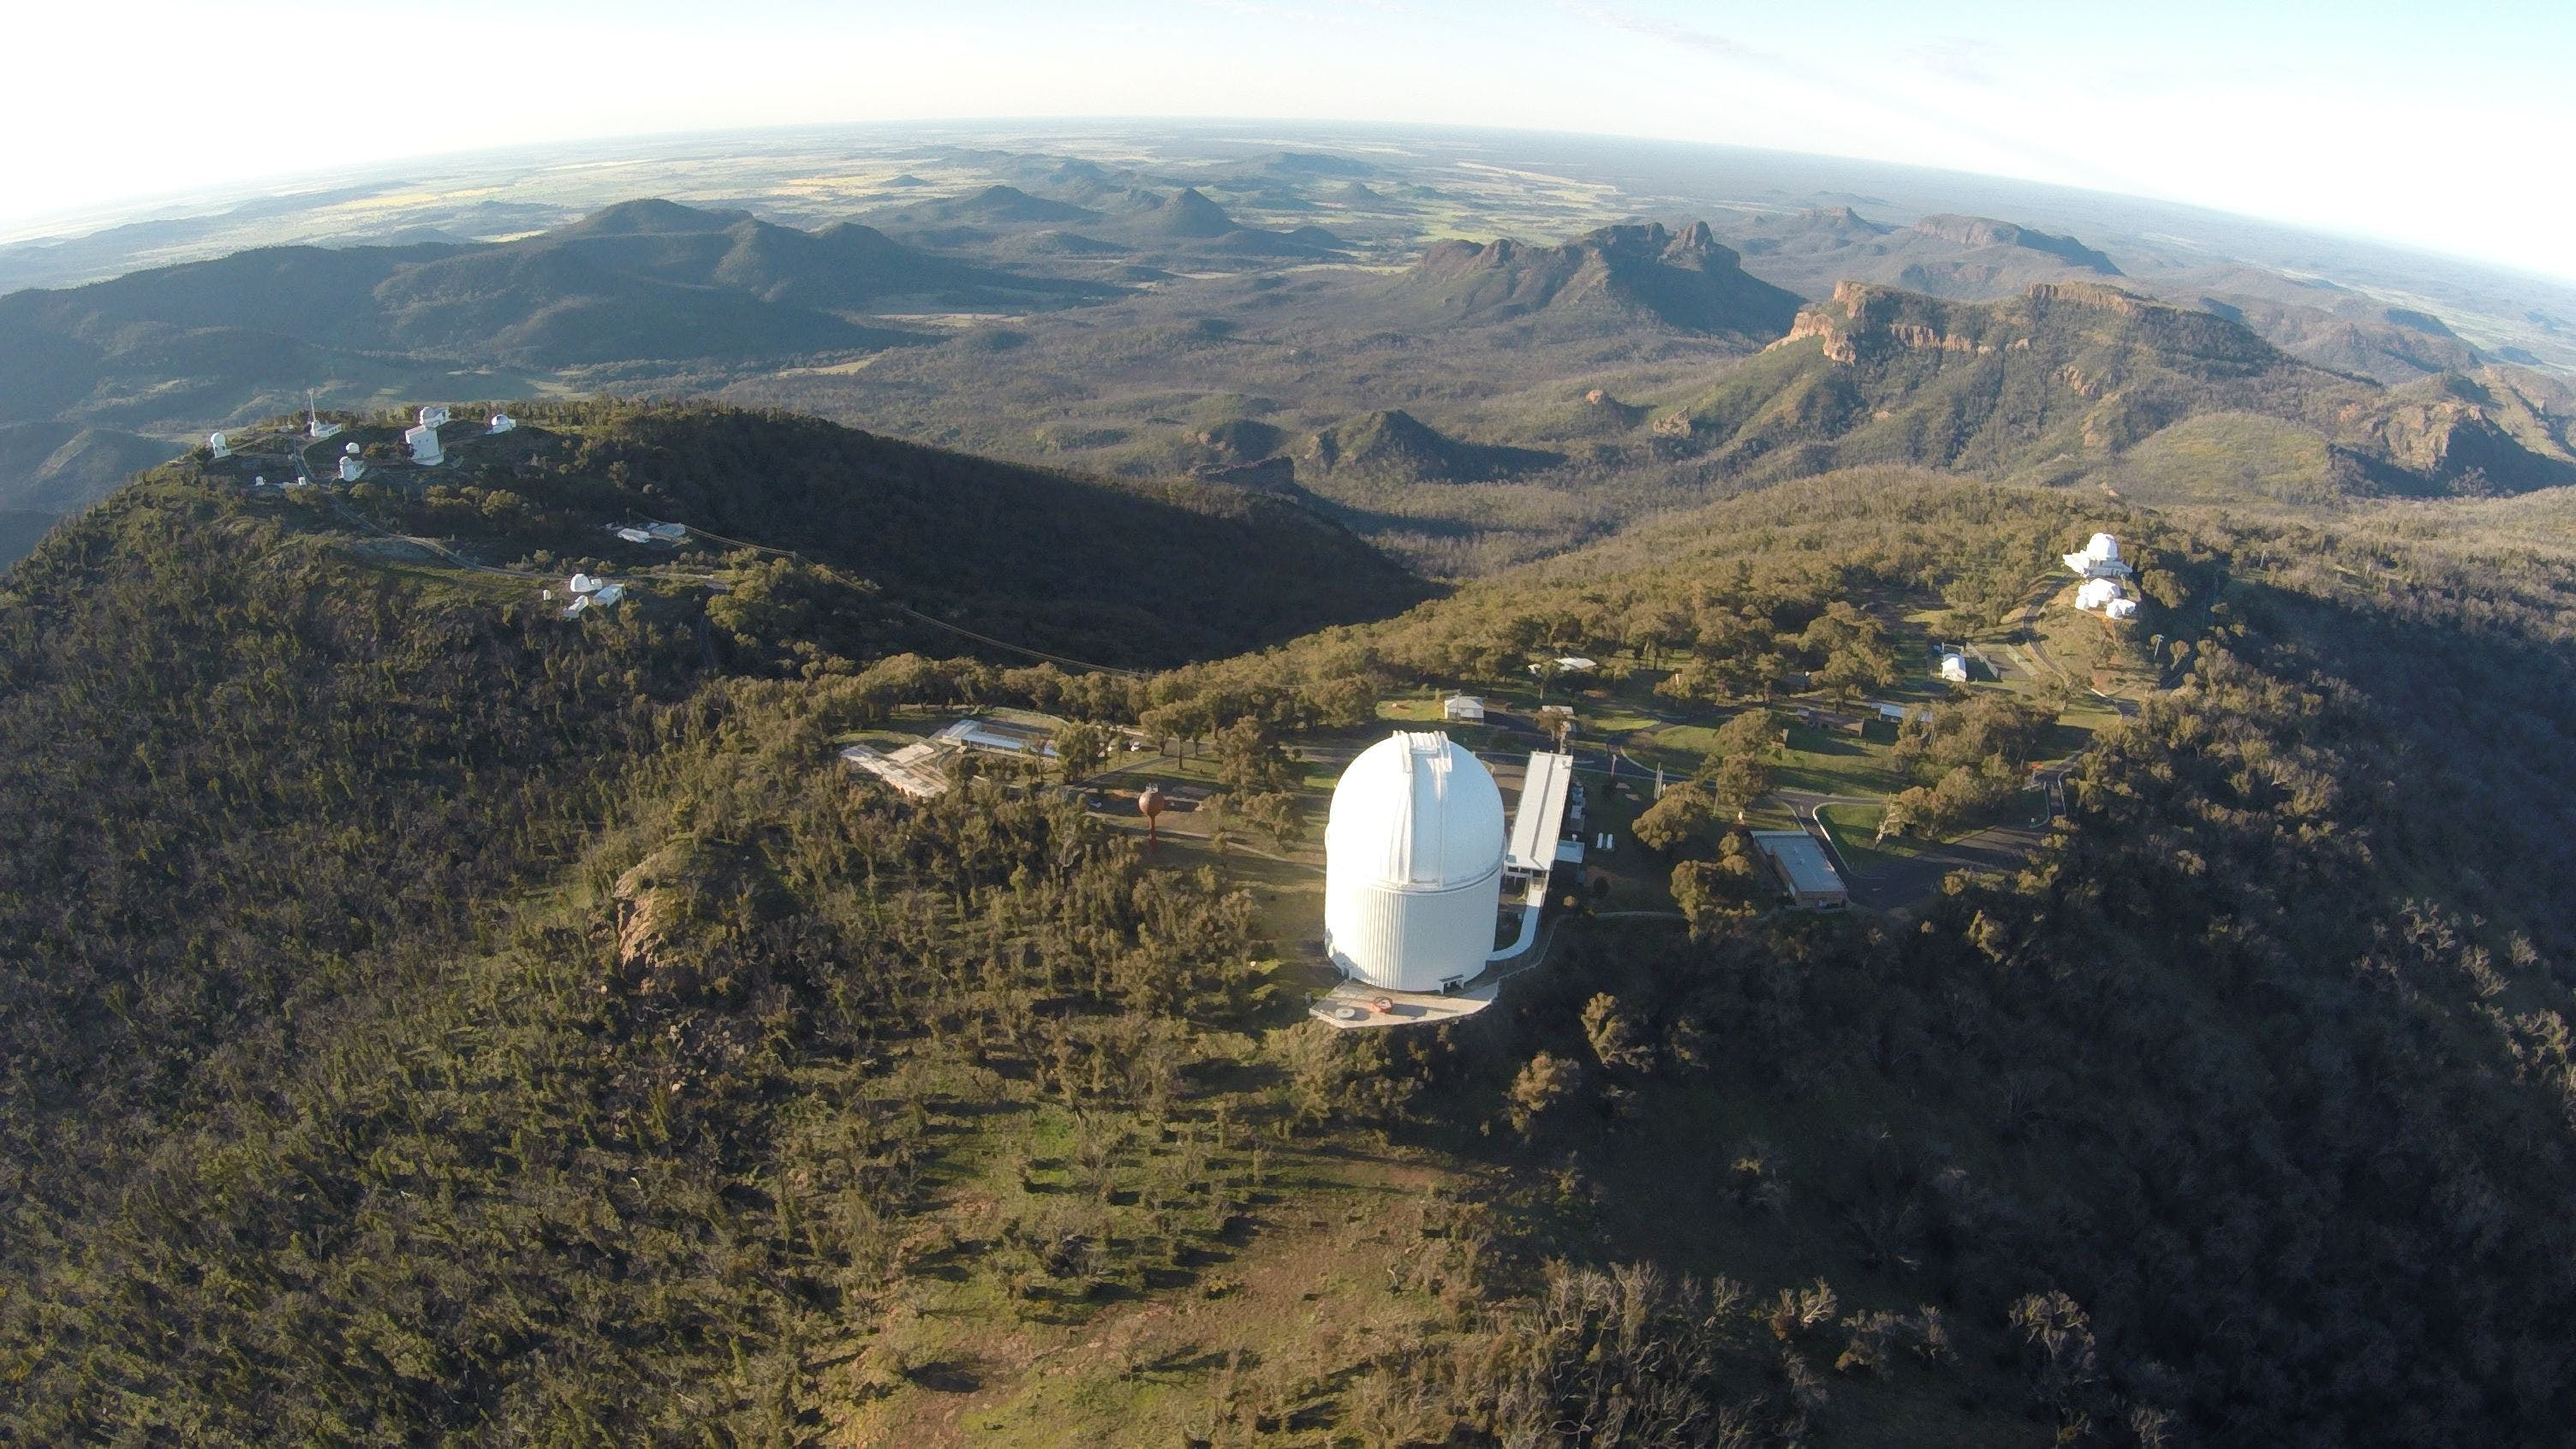 Siding Spring Observatory - Accommodation Sunshine Coast